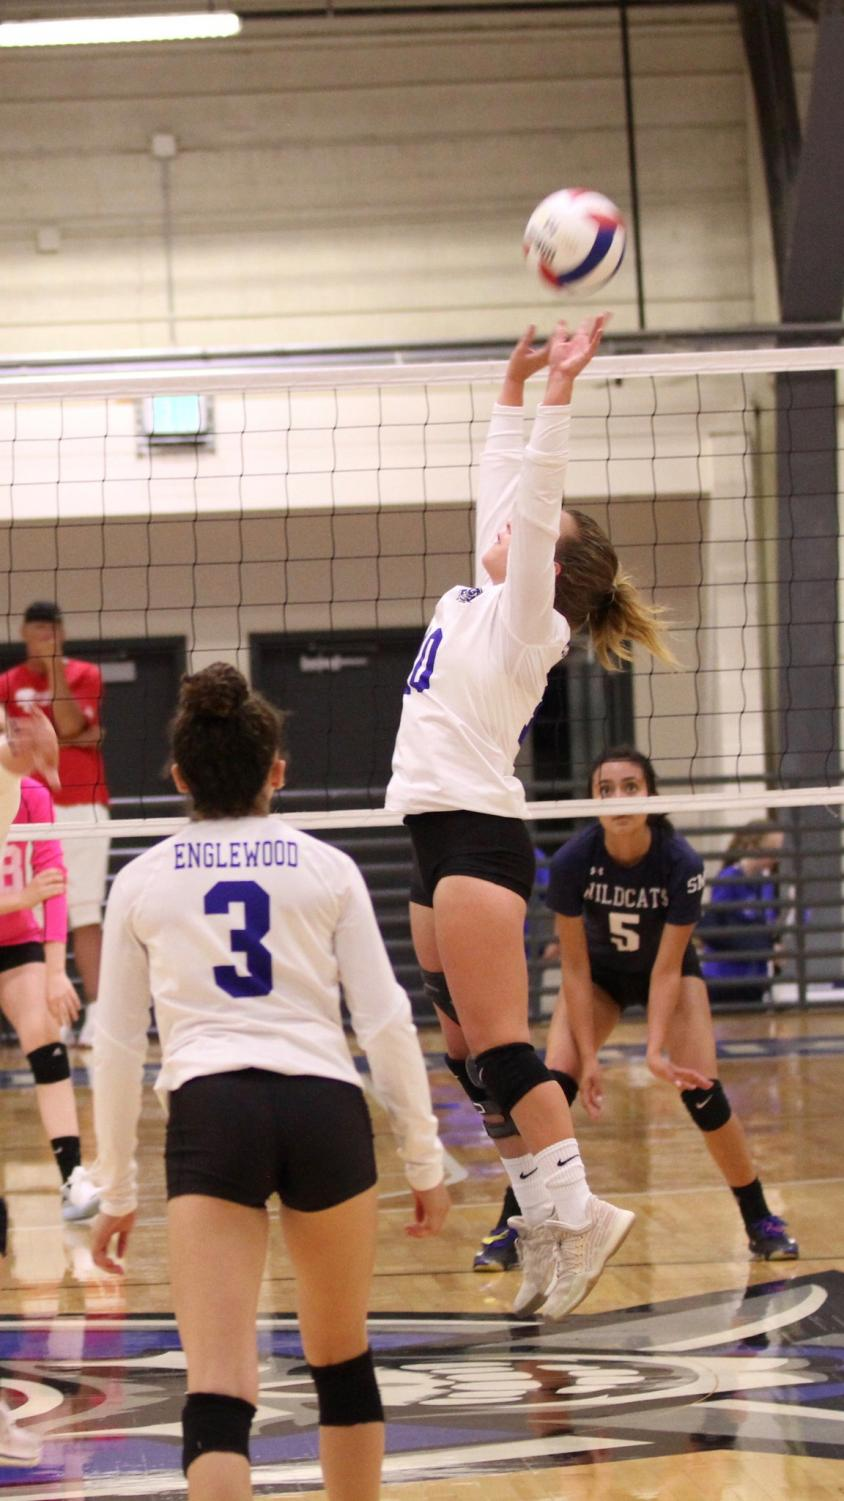 As+a+setter%2C+Hainey+has+a+reach+that+makes+her+taller+than+her+small+stature.+